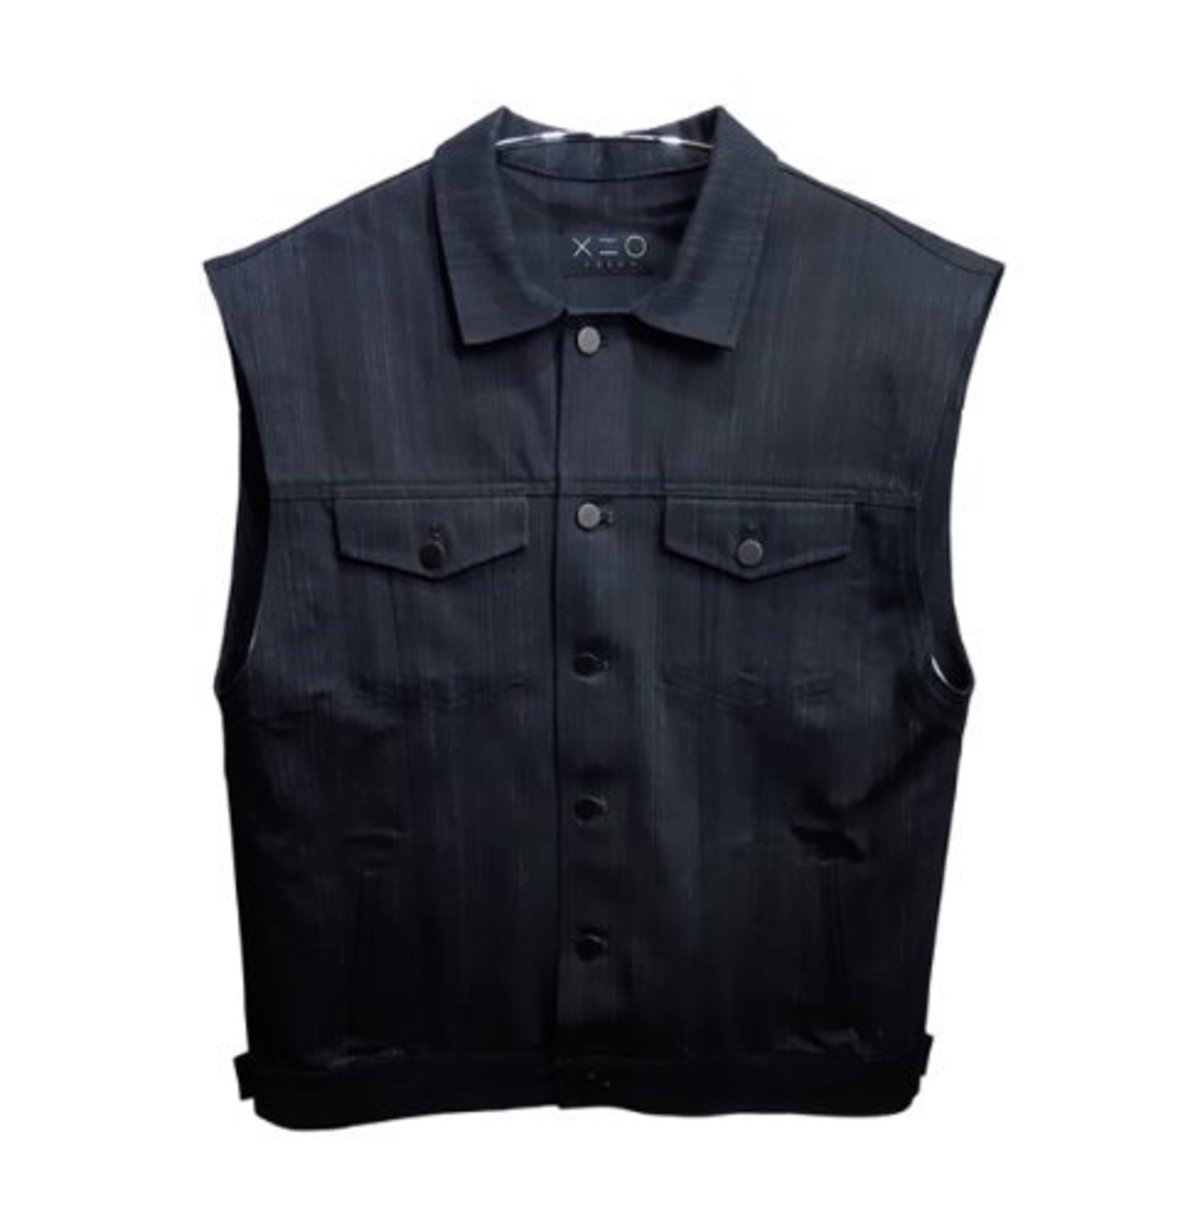 BLACK TRUCKER VEST JACKET